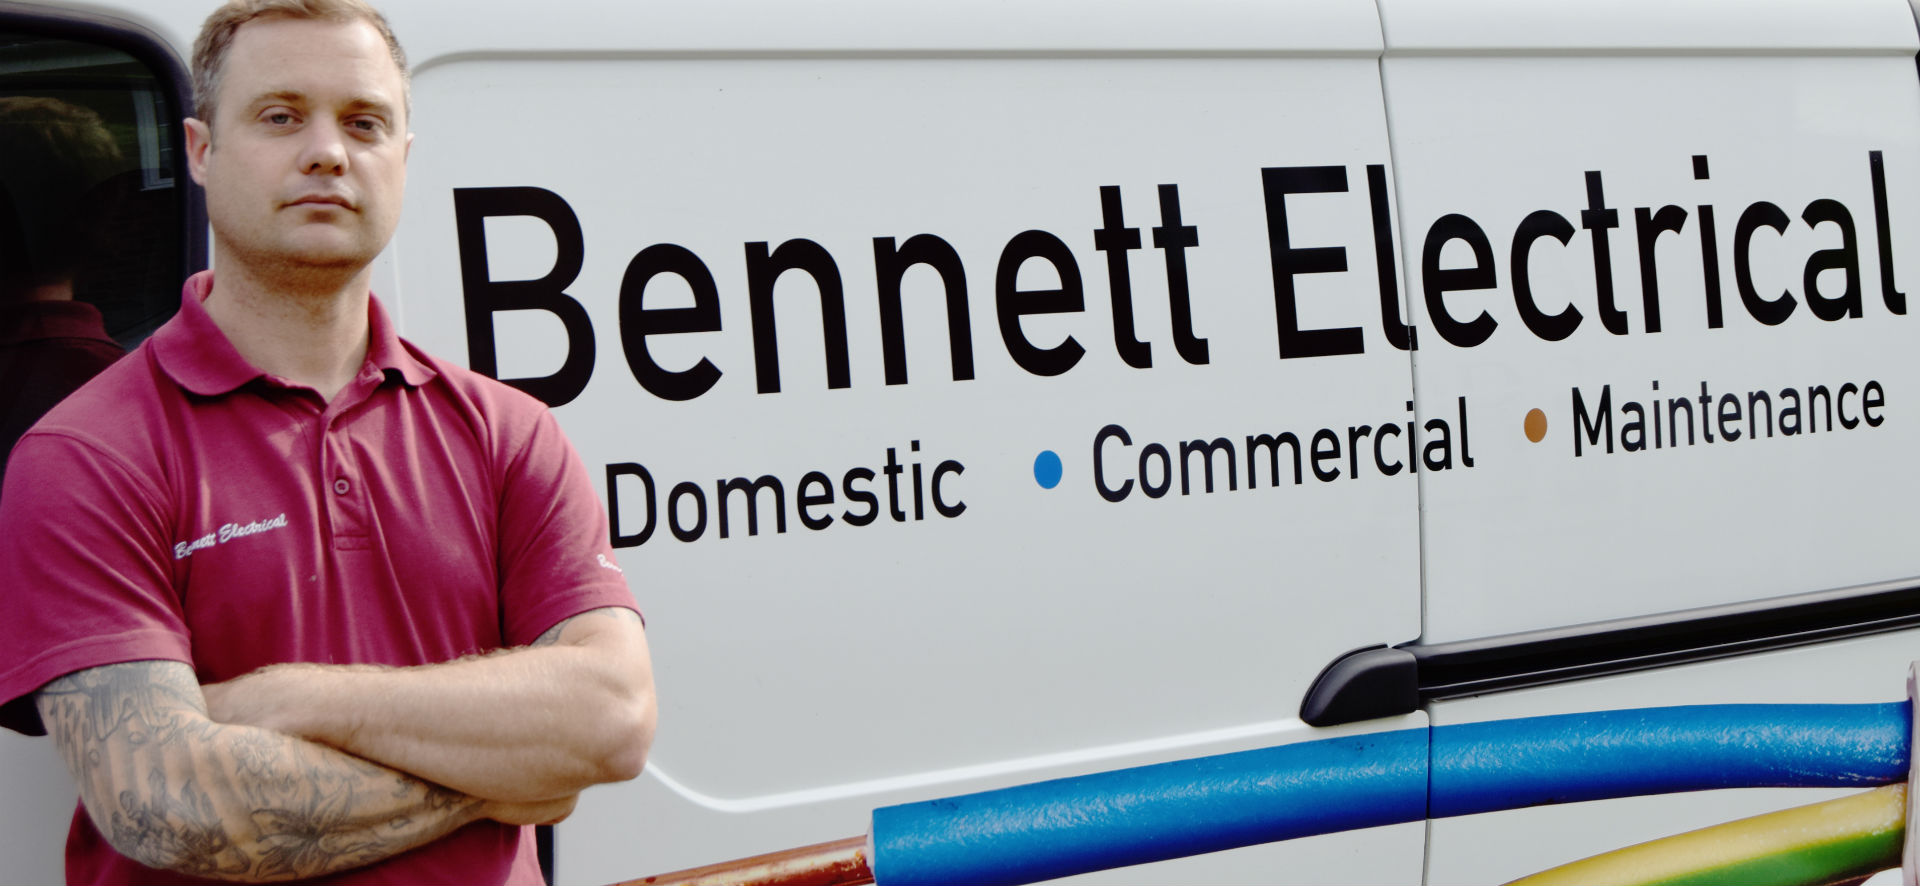 General Electrical Steve Bennett Wiring A British Garage Consumer Unit If He Can Help You Will